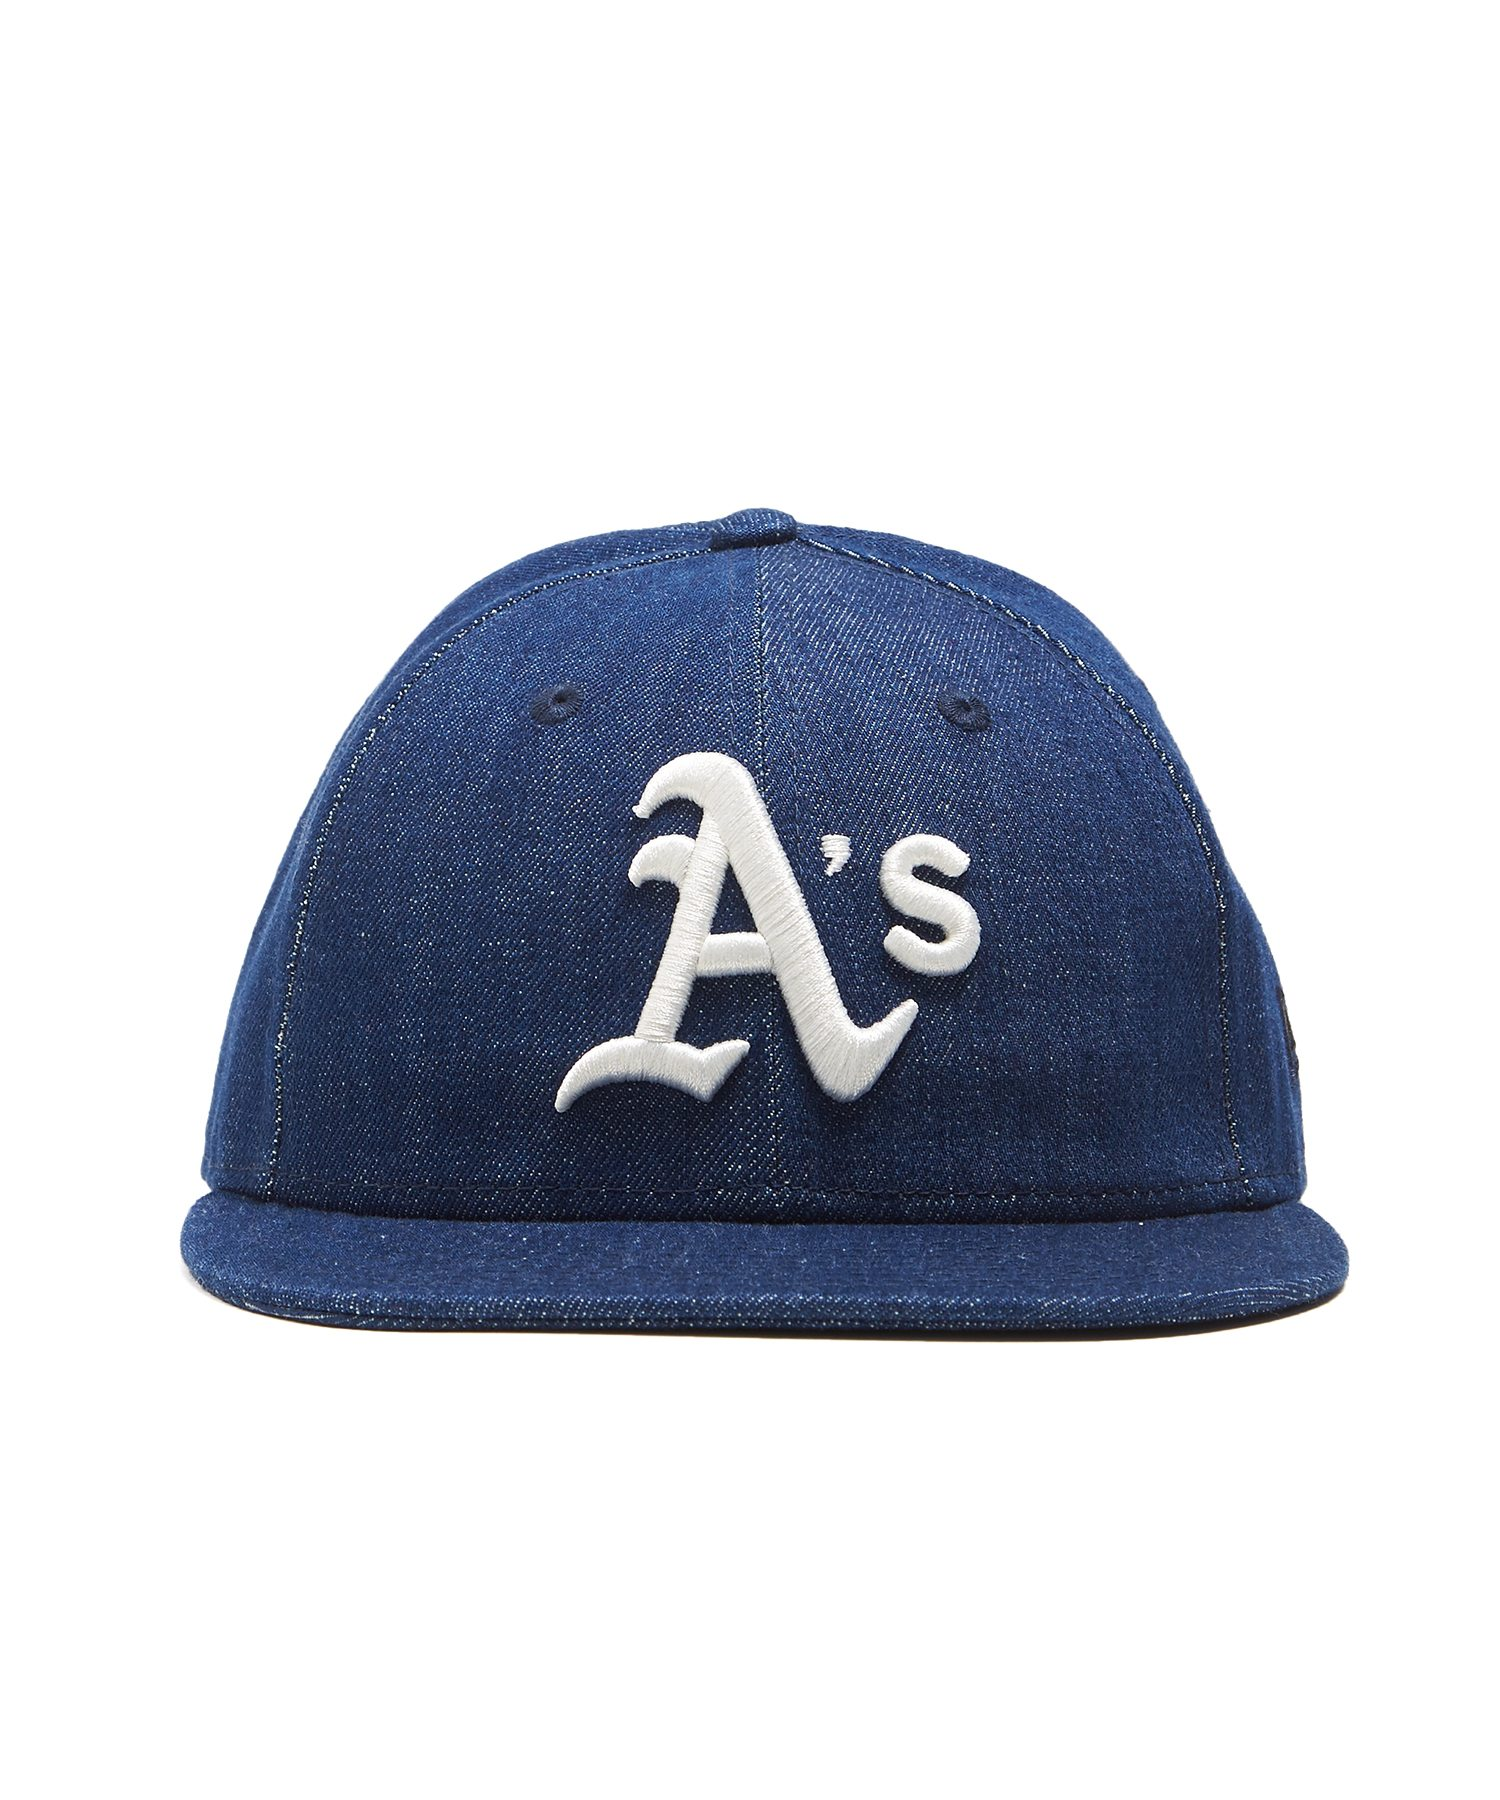 separation shoes 8d9f4 33dc9 TODD SNYDER + NEW ERA OAKLAND ATHLETICS CAP IN CONE DENIM